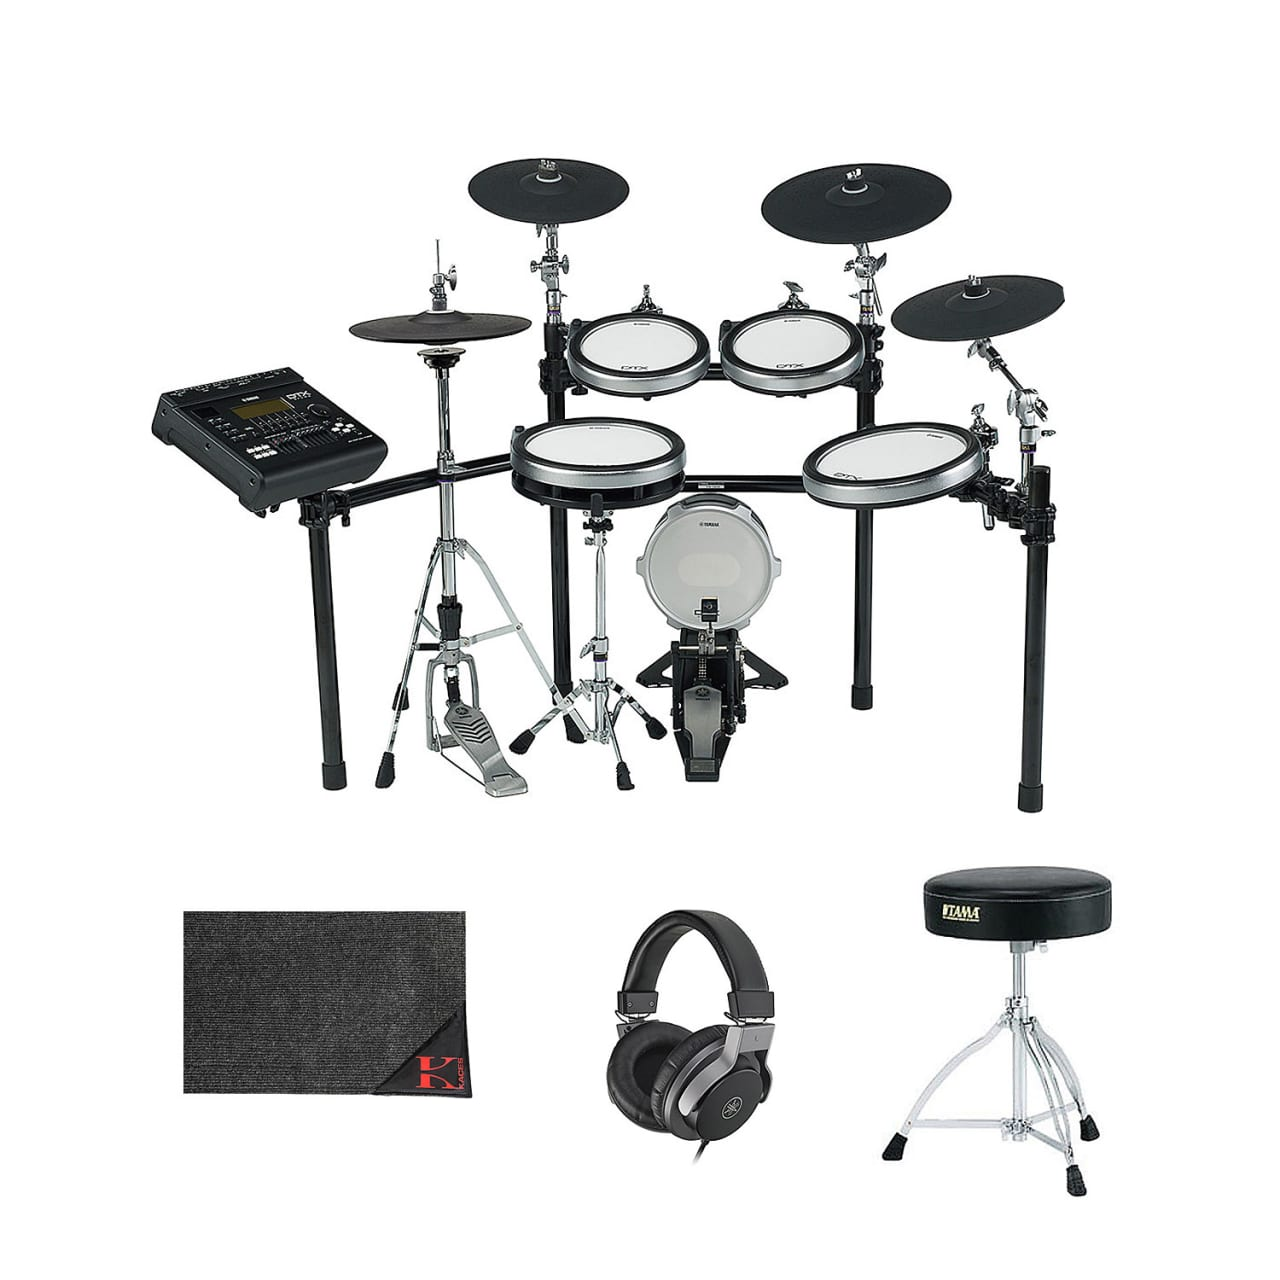 Yamaha dtx series dtx920 electronic drum set with monitor for Yamaha dtx920k review